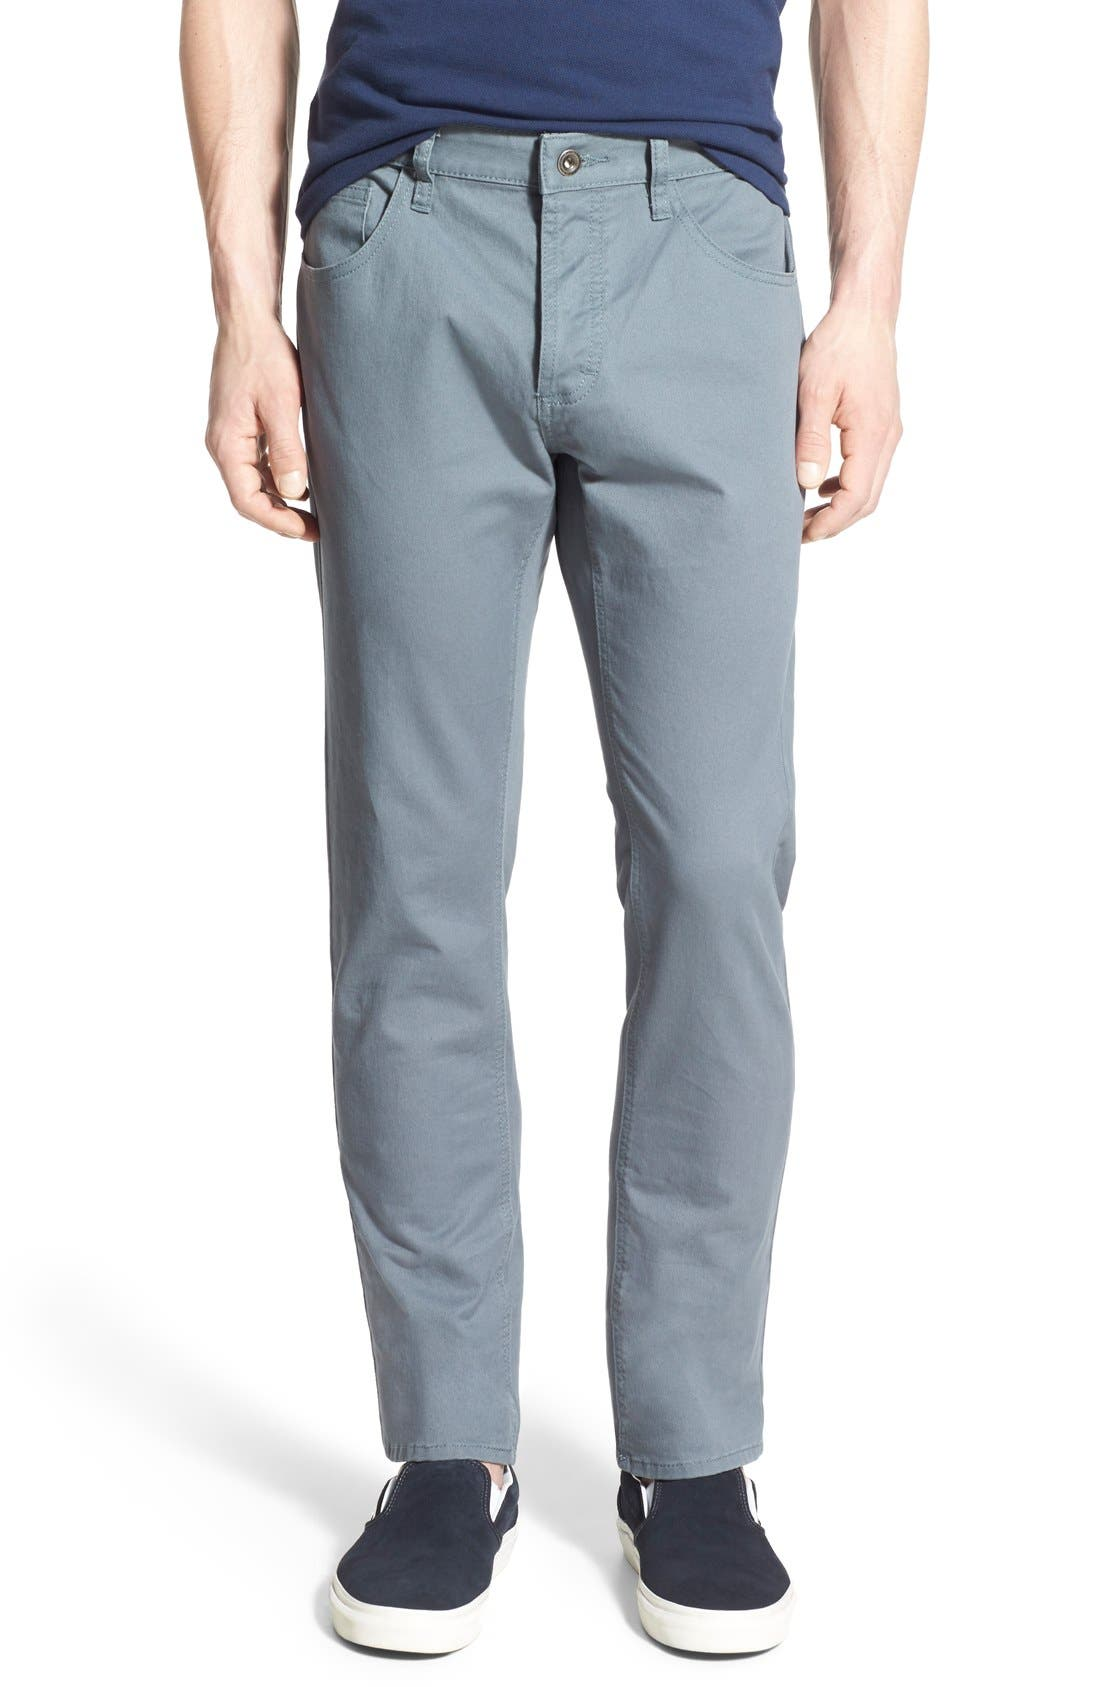 Alternate Image 1 Selected - RVCA 'Stay RVCA' Slim Straight Pants (Online Only)